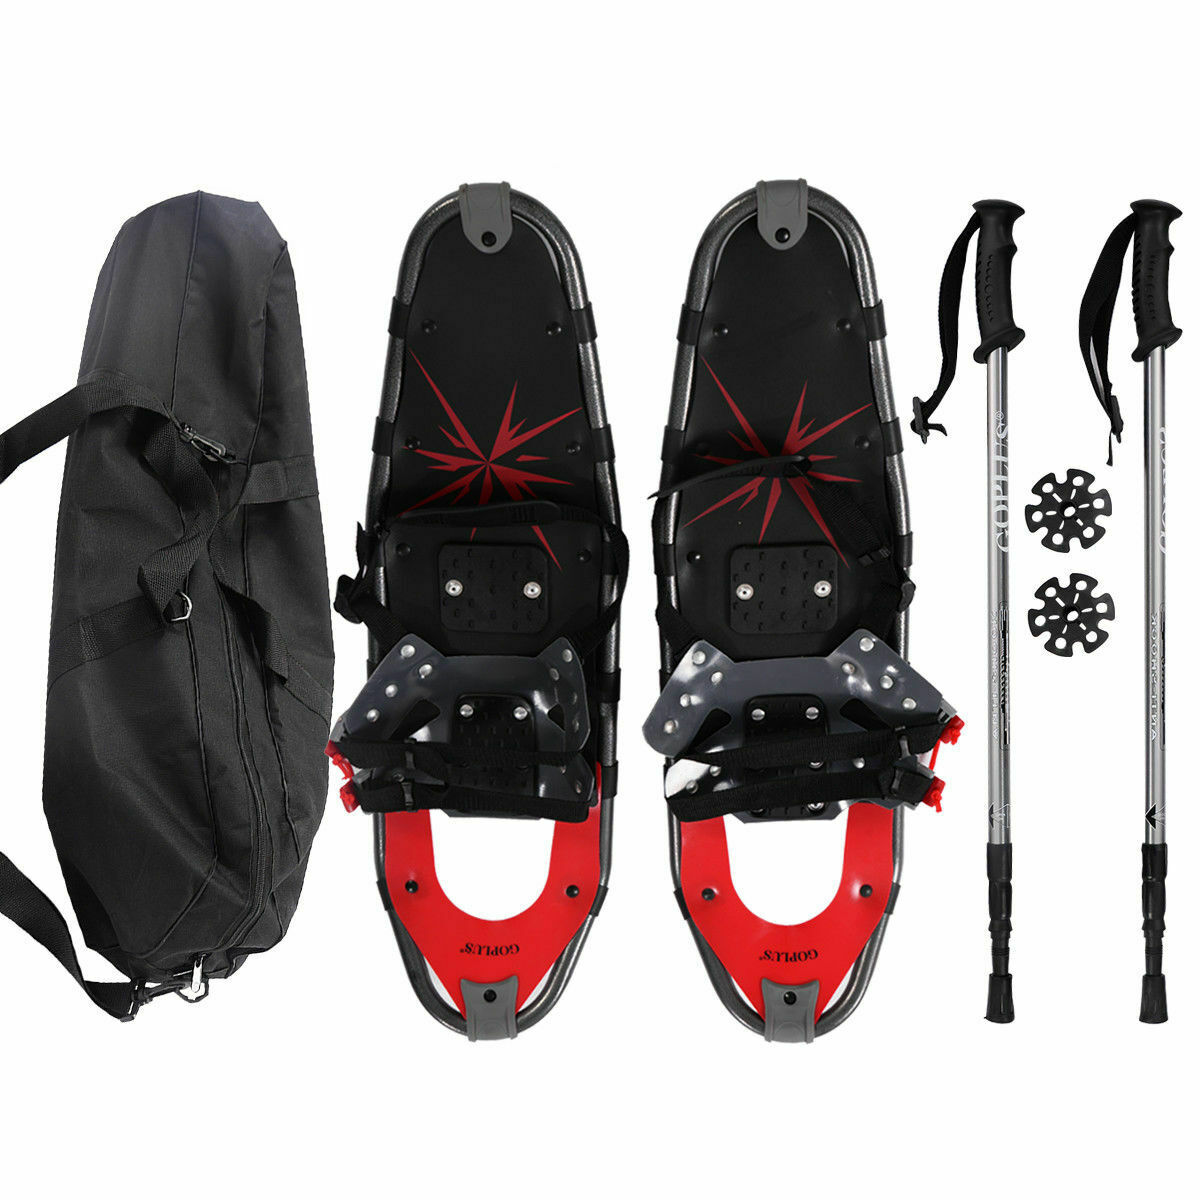 Goplus 27'' RED All Terrain Sports Snowshoes + Walking Poles + Free Carrying Bag